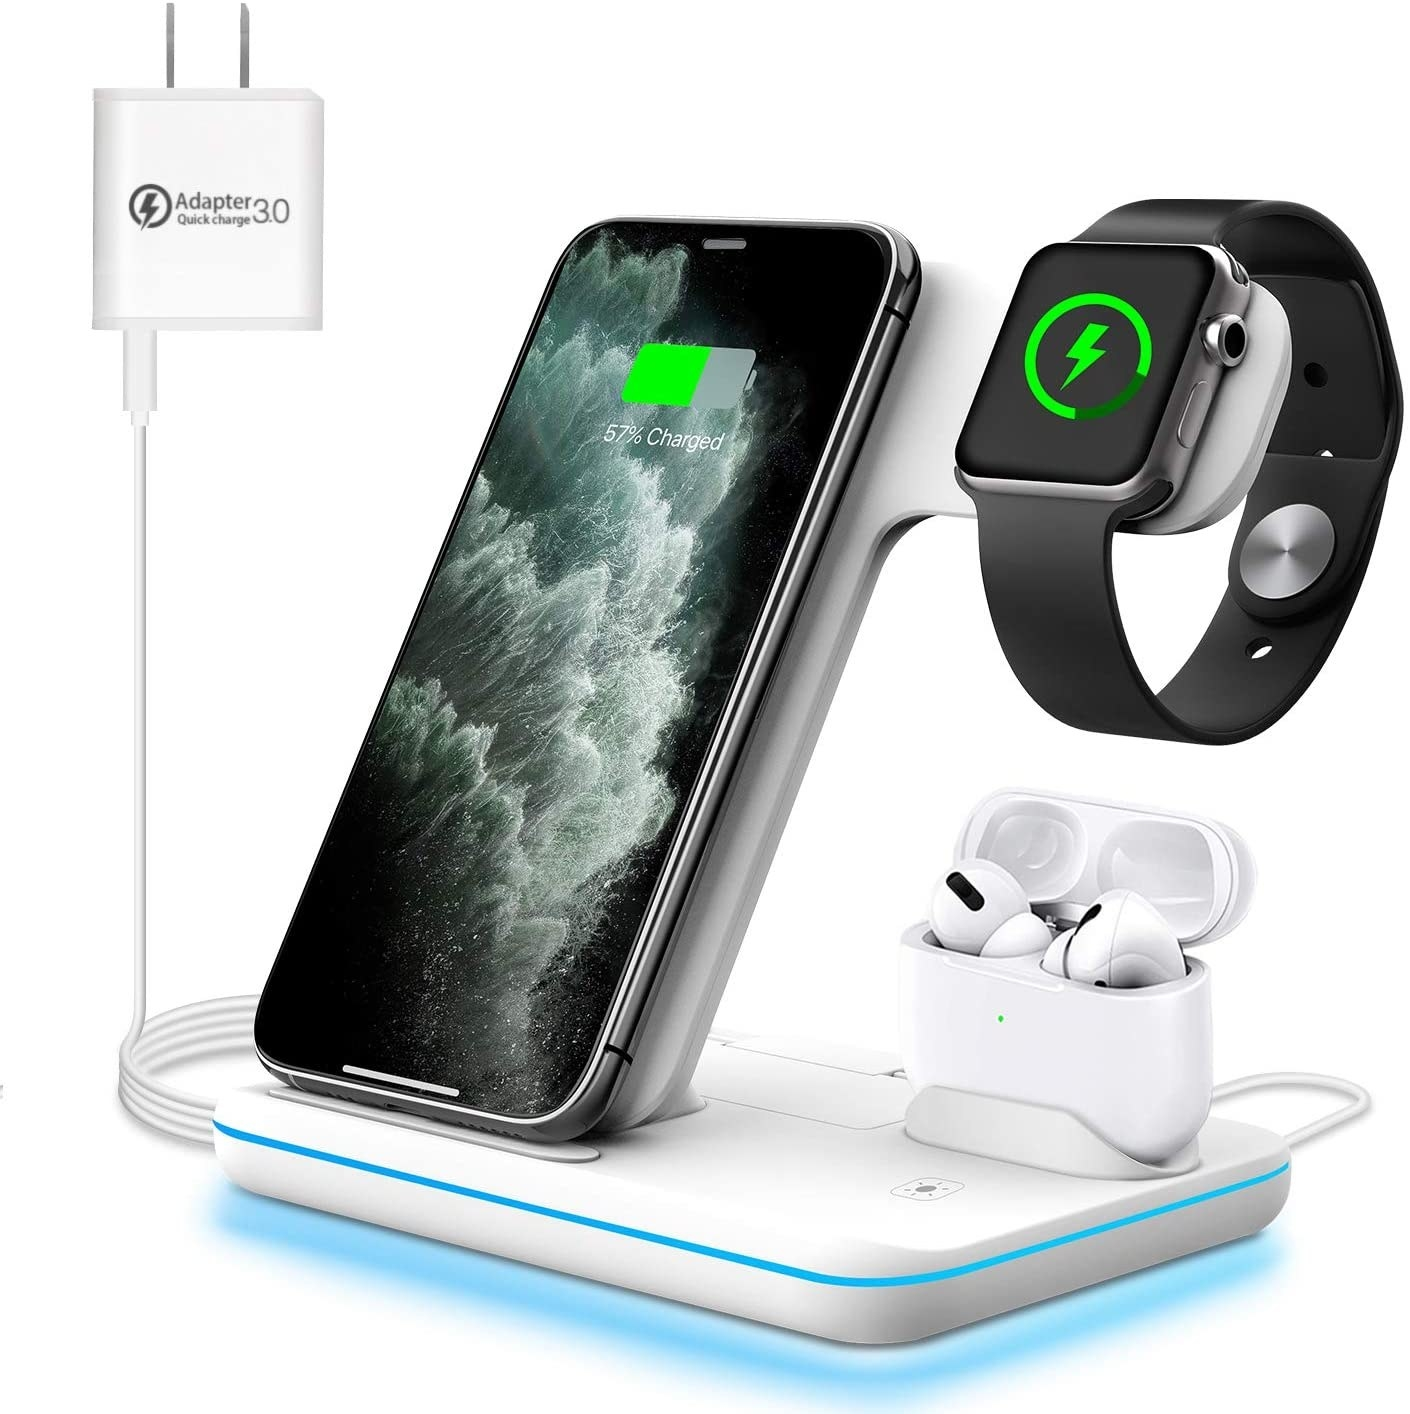 Three-in-one wireless charging station with phone, AirPods and Apple Watch